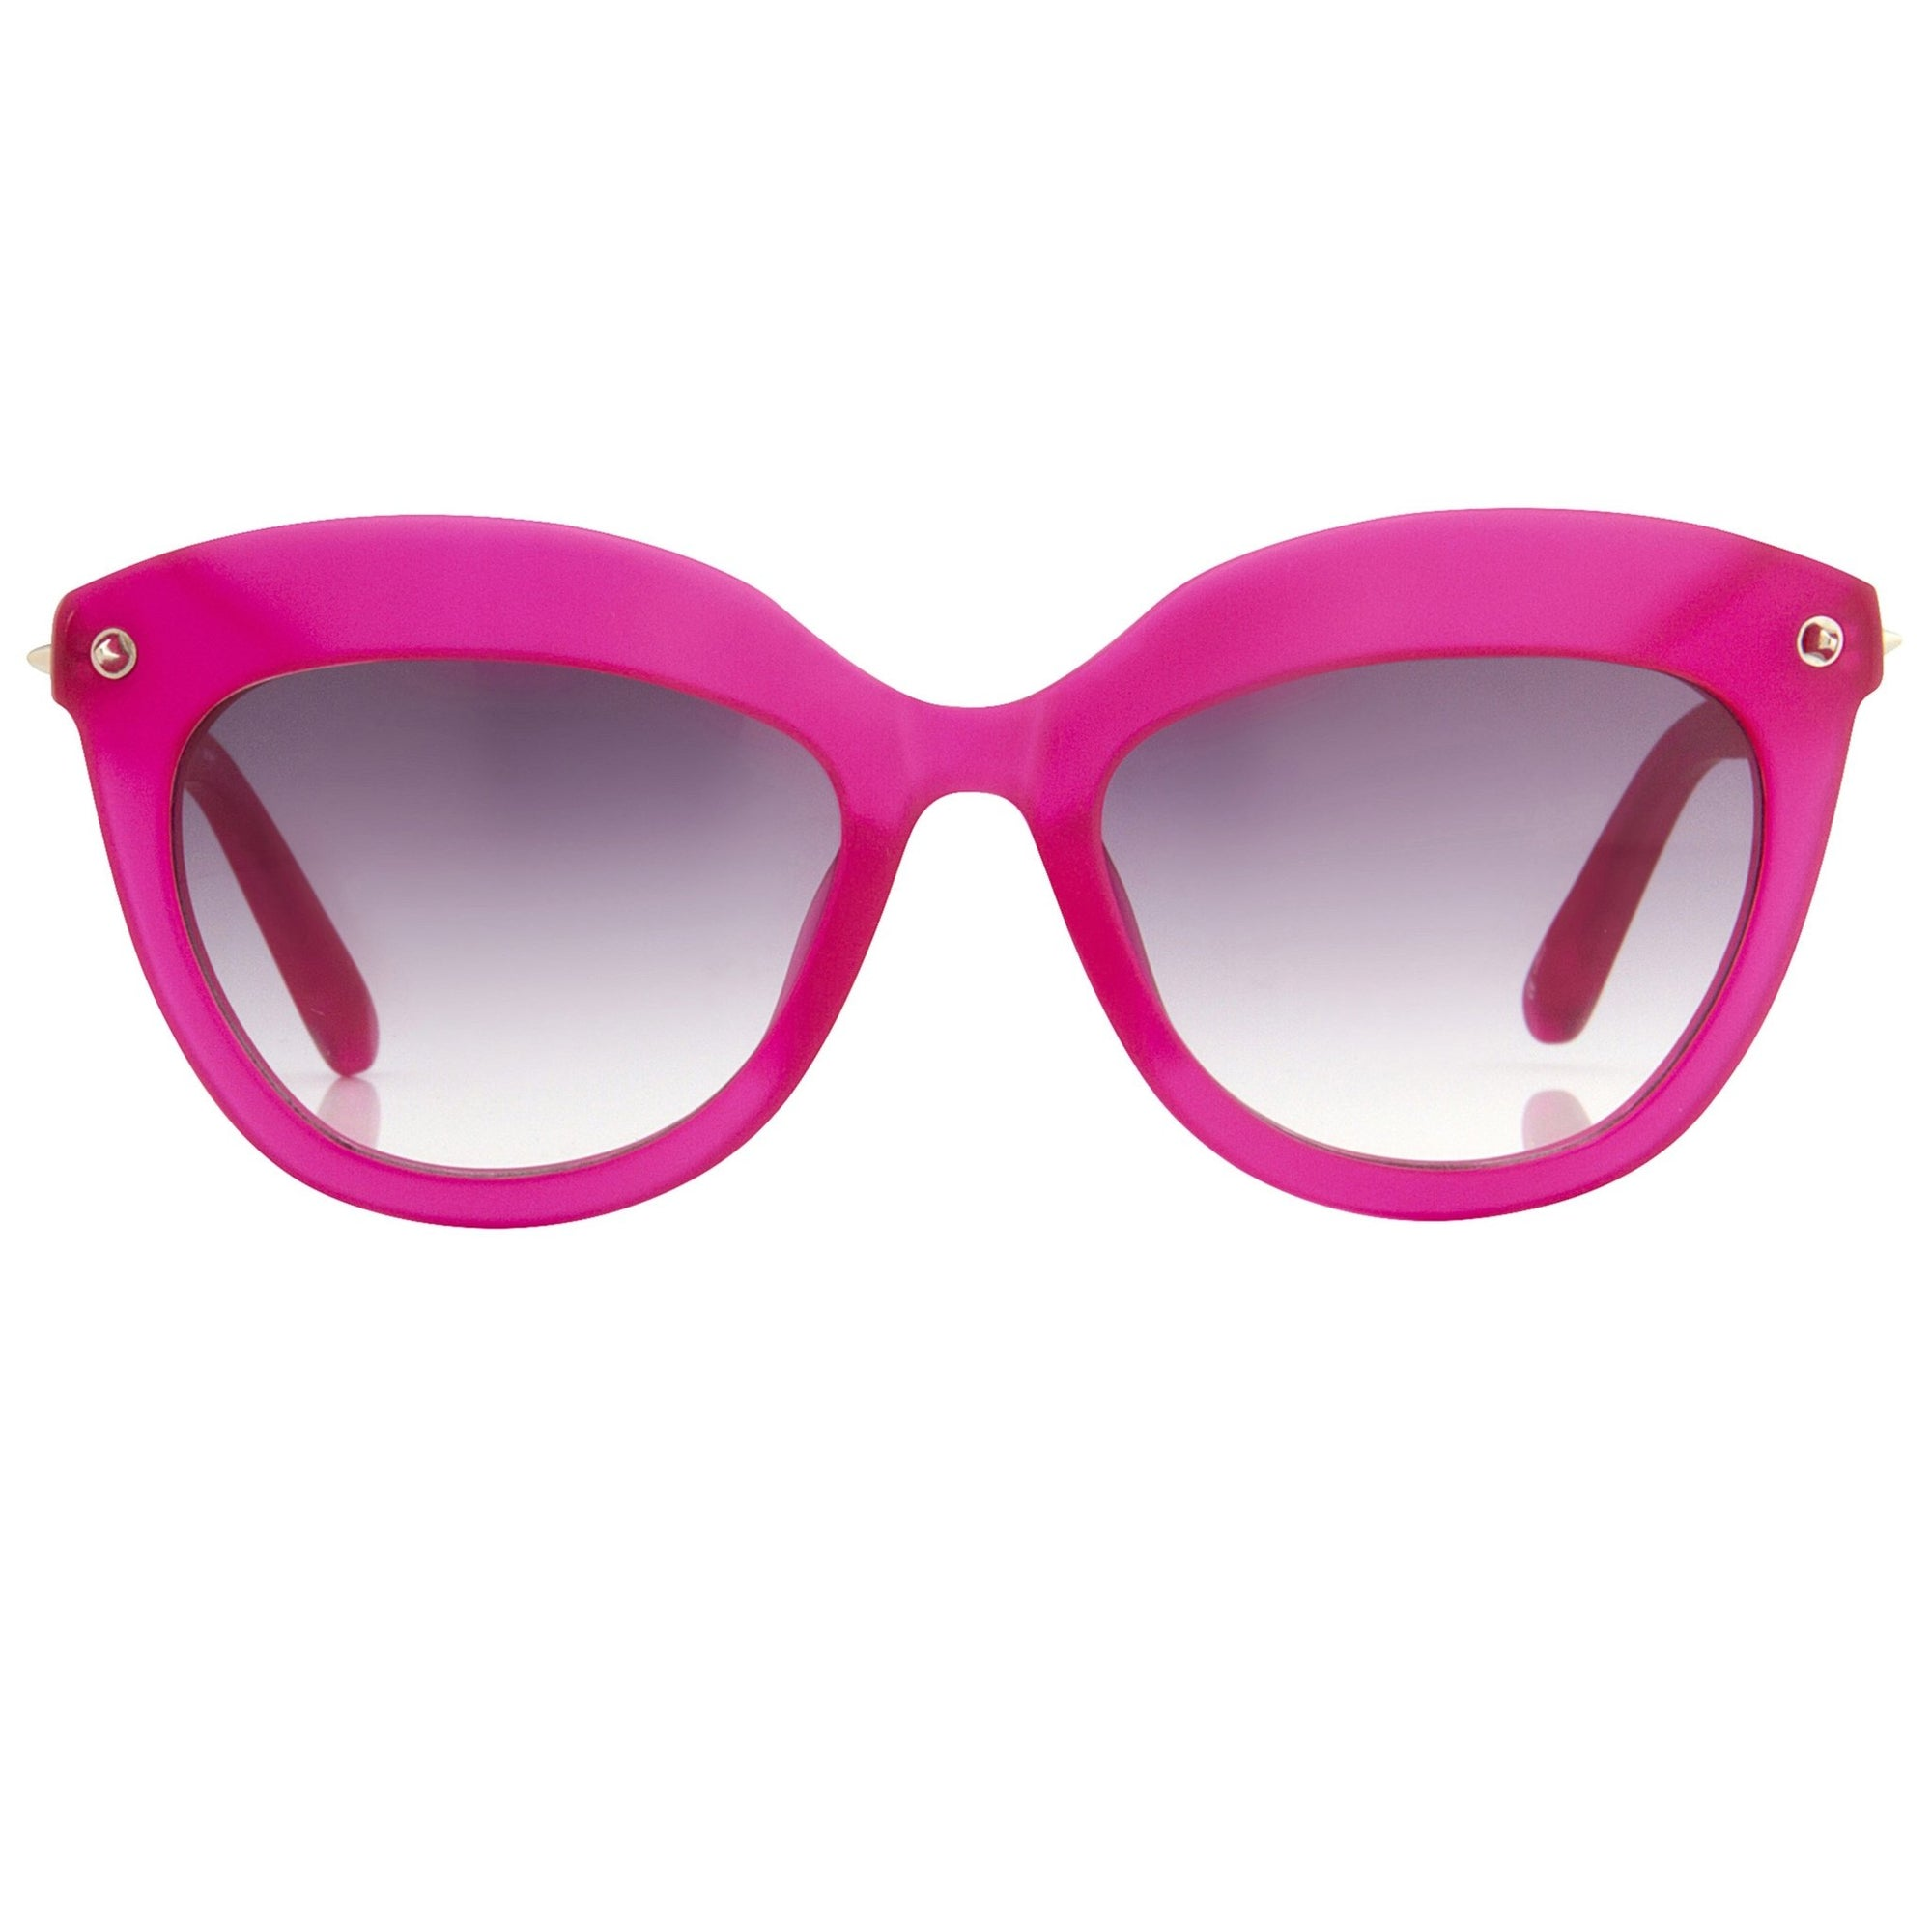 Agent Provocateur Sunglasses Cat Eye Pink and Grey Graduated Lenses - AP45C6SUN - Watches & Crystals